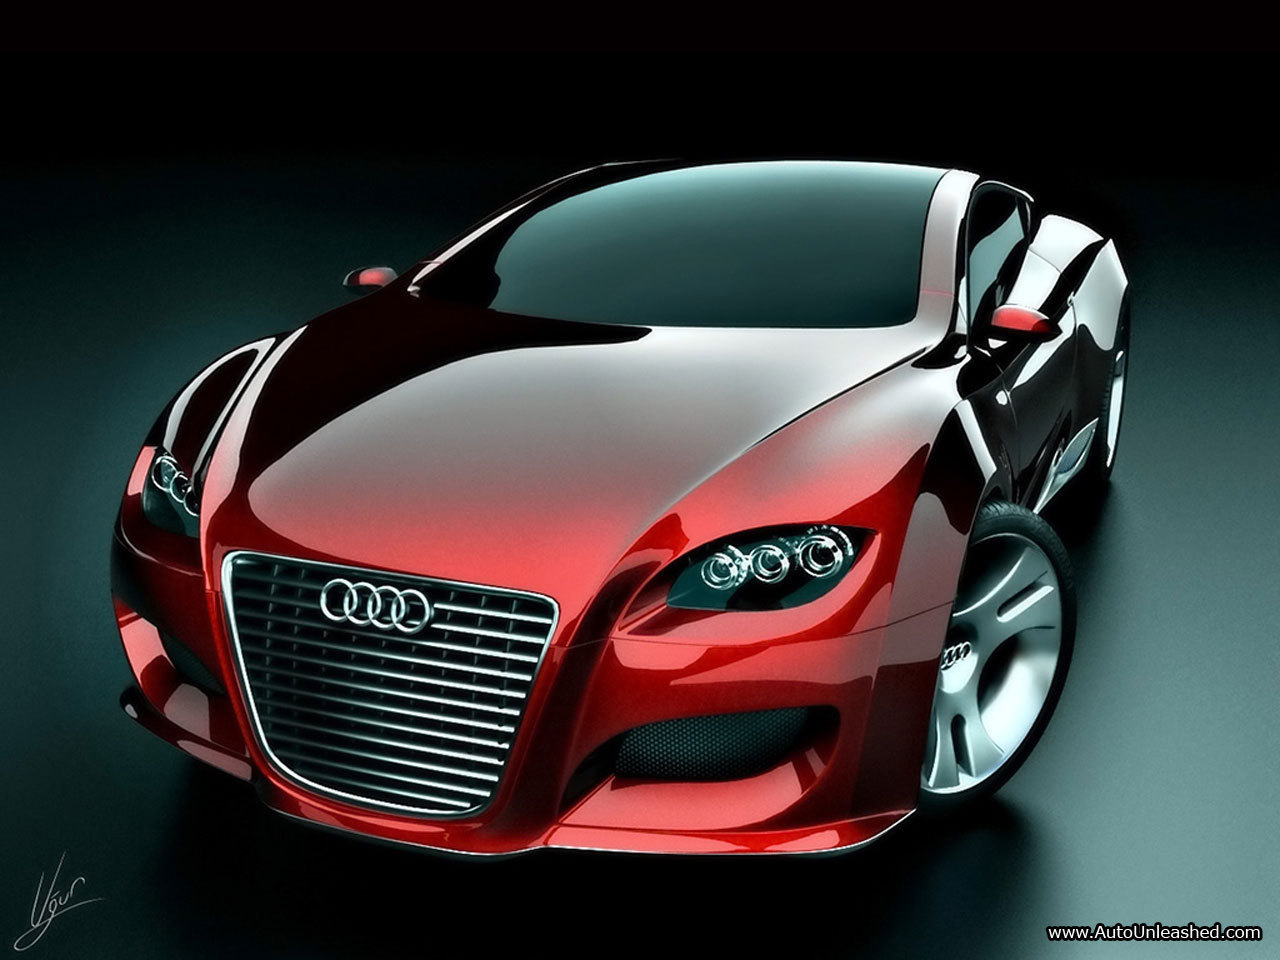 Audi Cars Audi Wallpaper 4294882 Fanpop